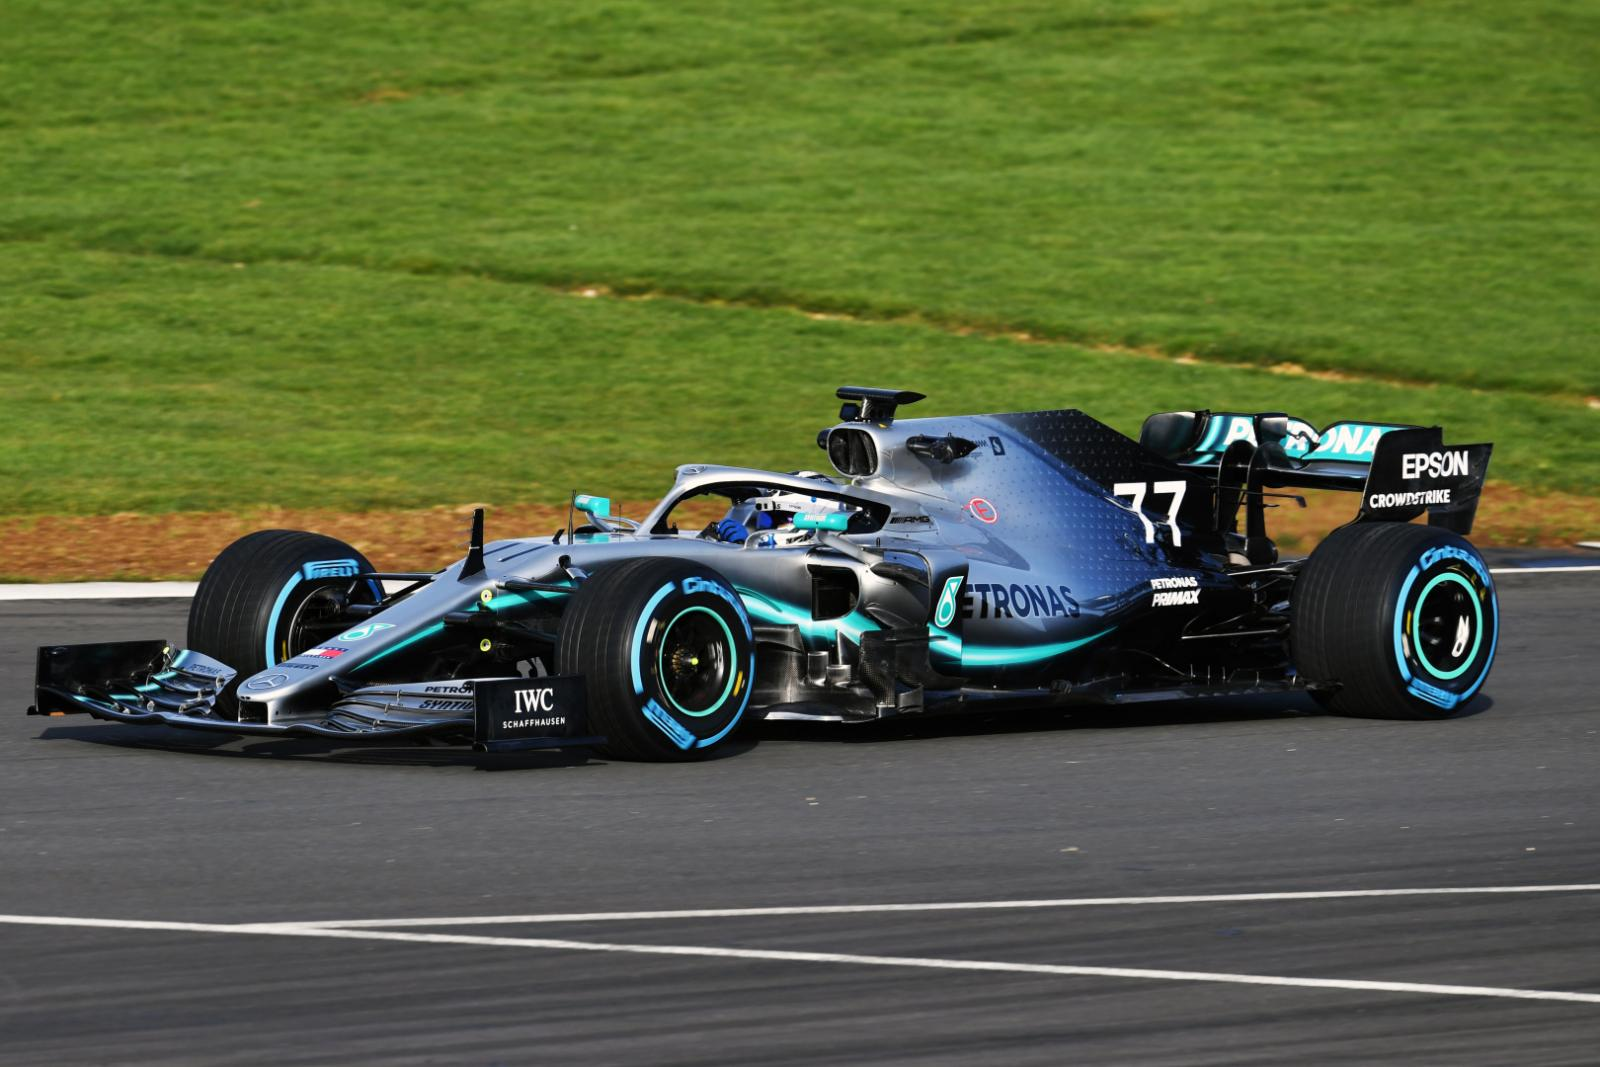 mercedes-2019-f1-car-on-track